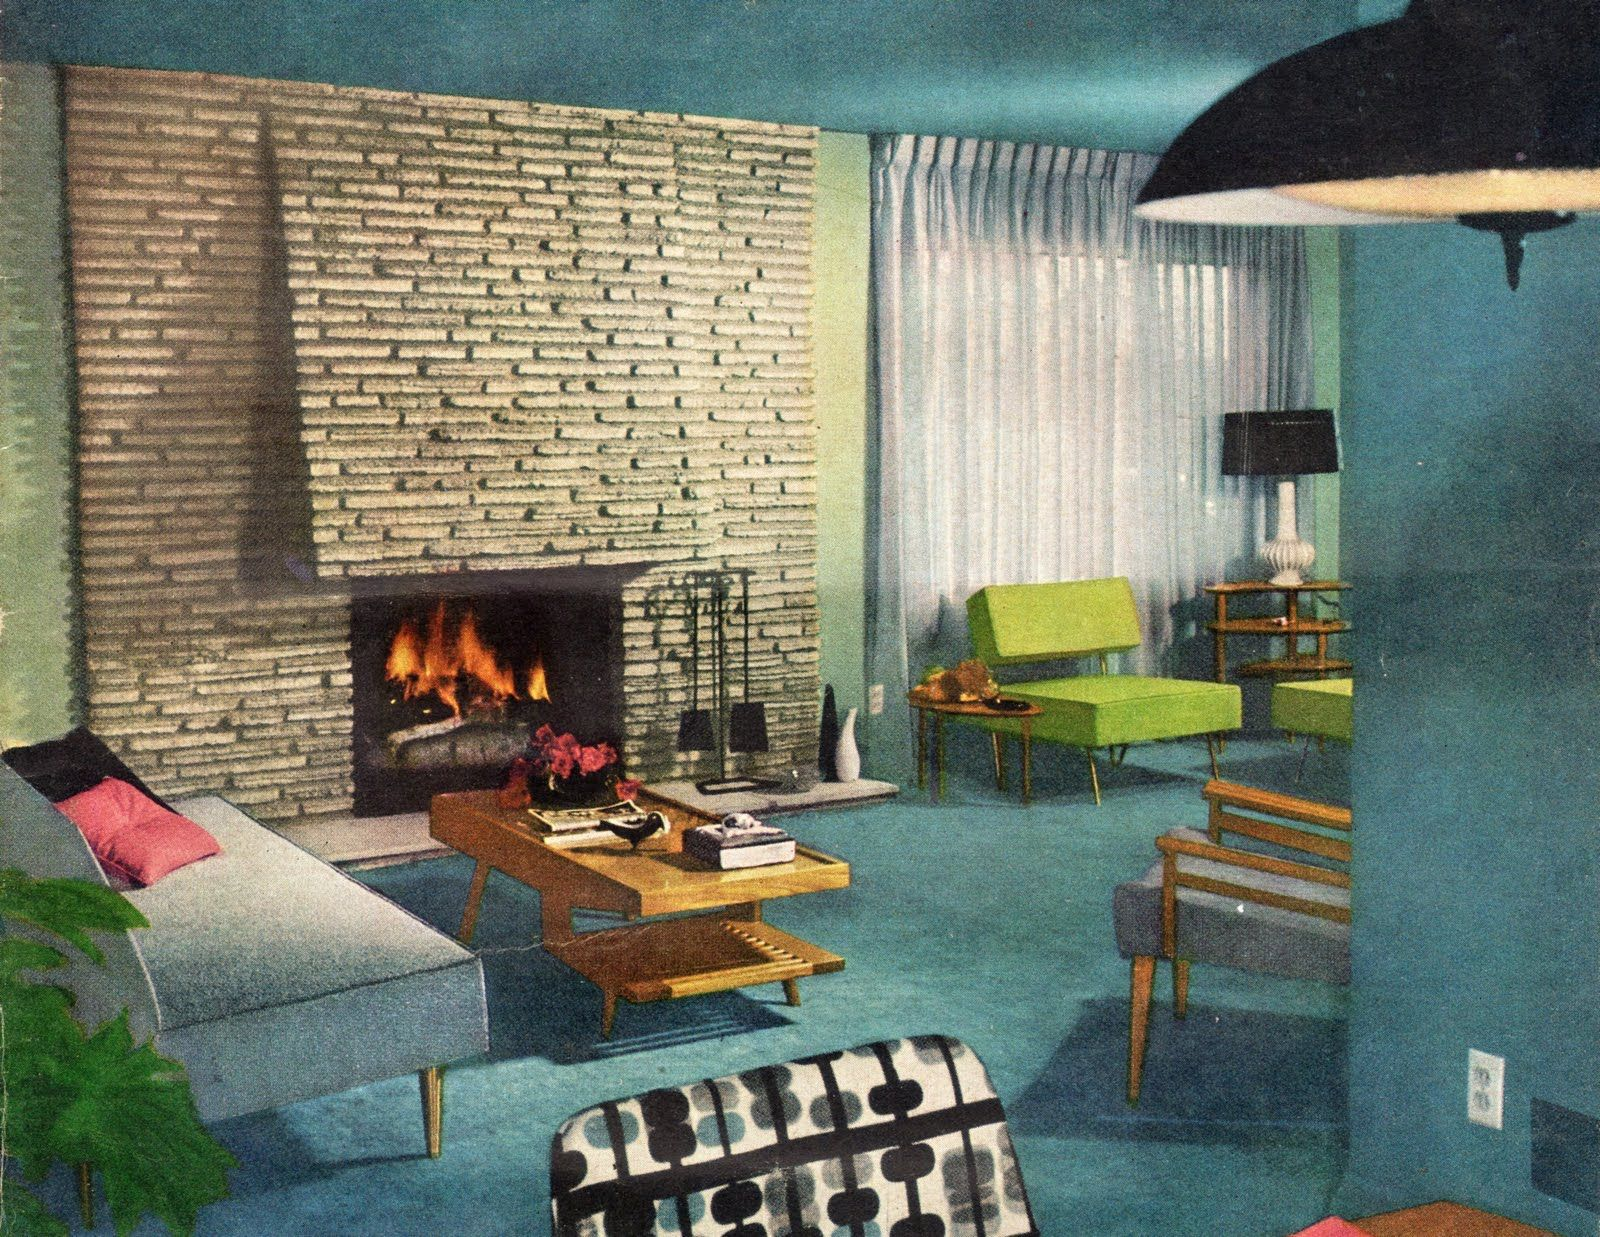 Midcentury Modern Living Room Concept The Advertising Age Part Ii  Mid Century Living Room Fireplaces .